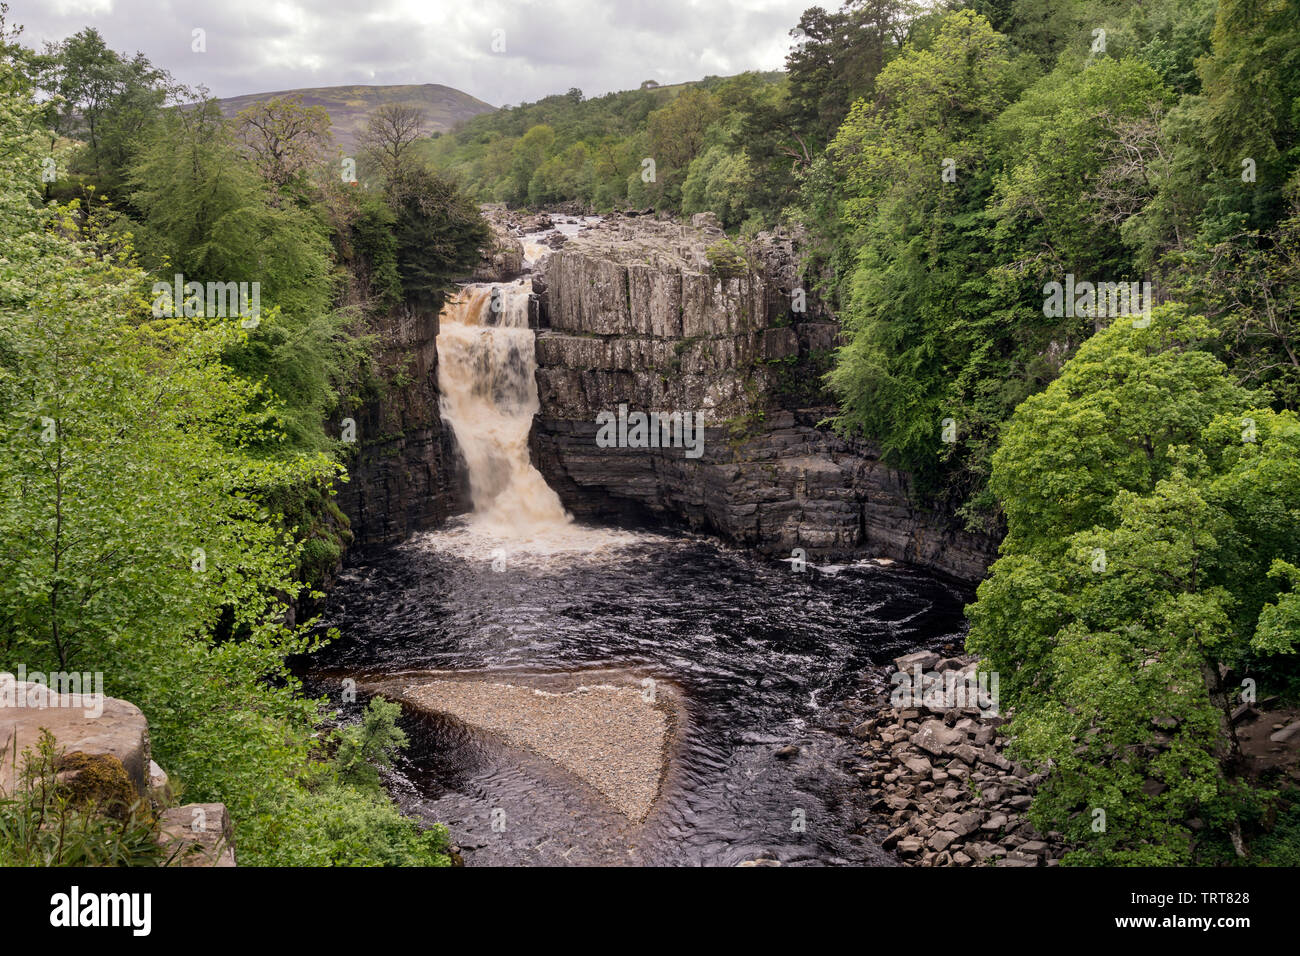 High Force, Teesdale. - Stock Image